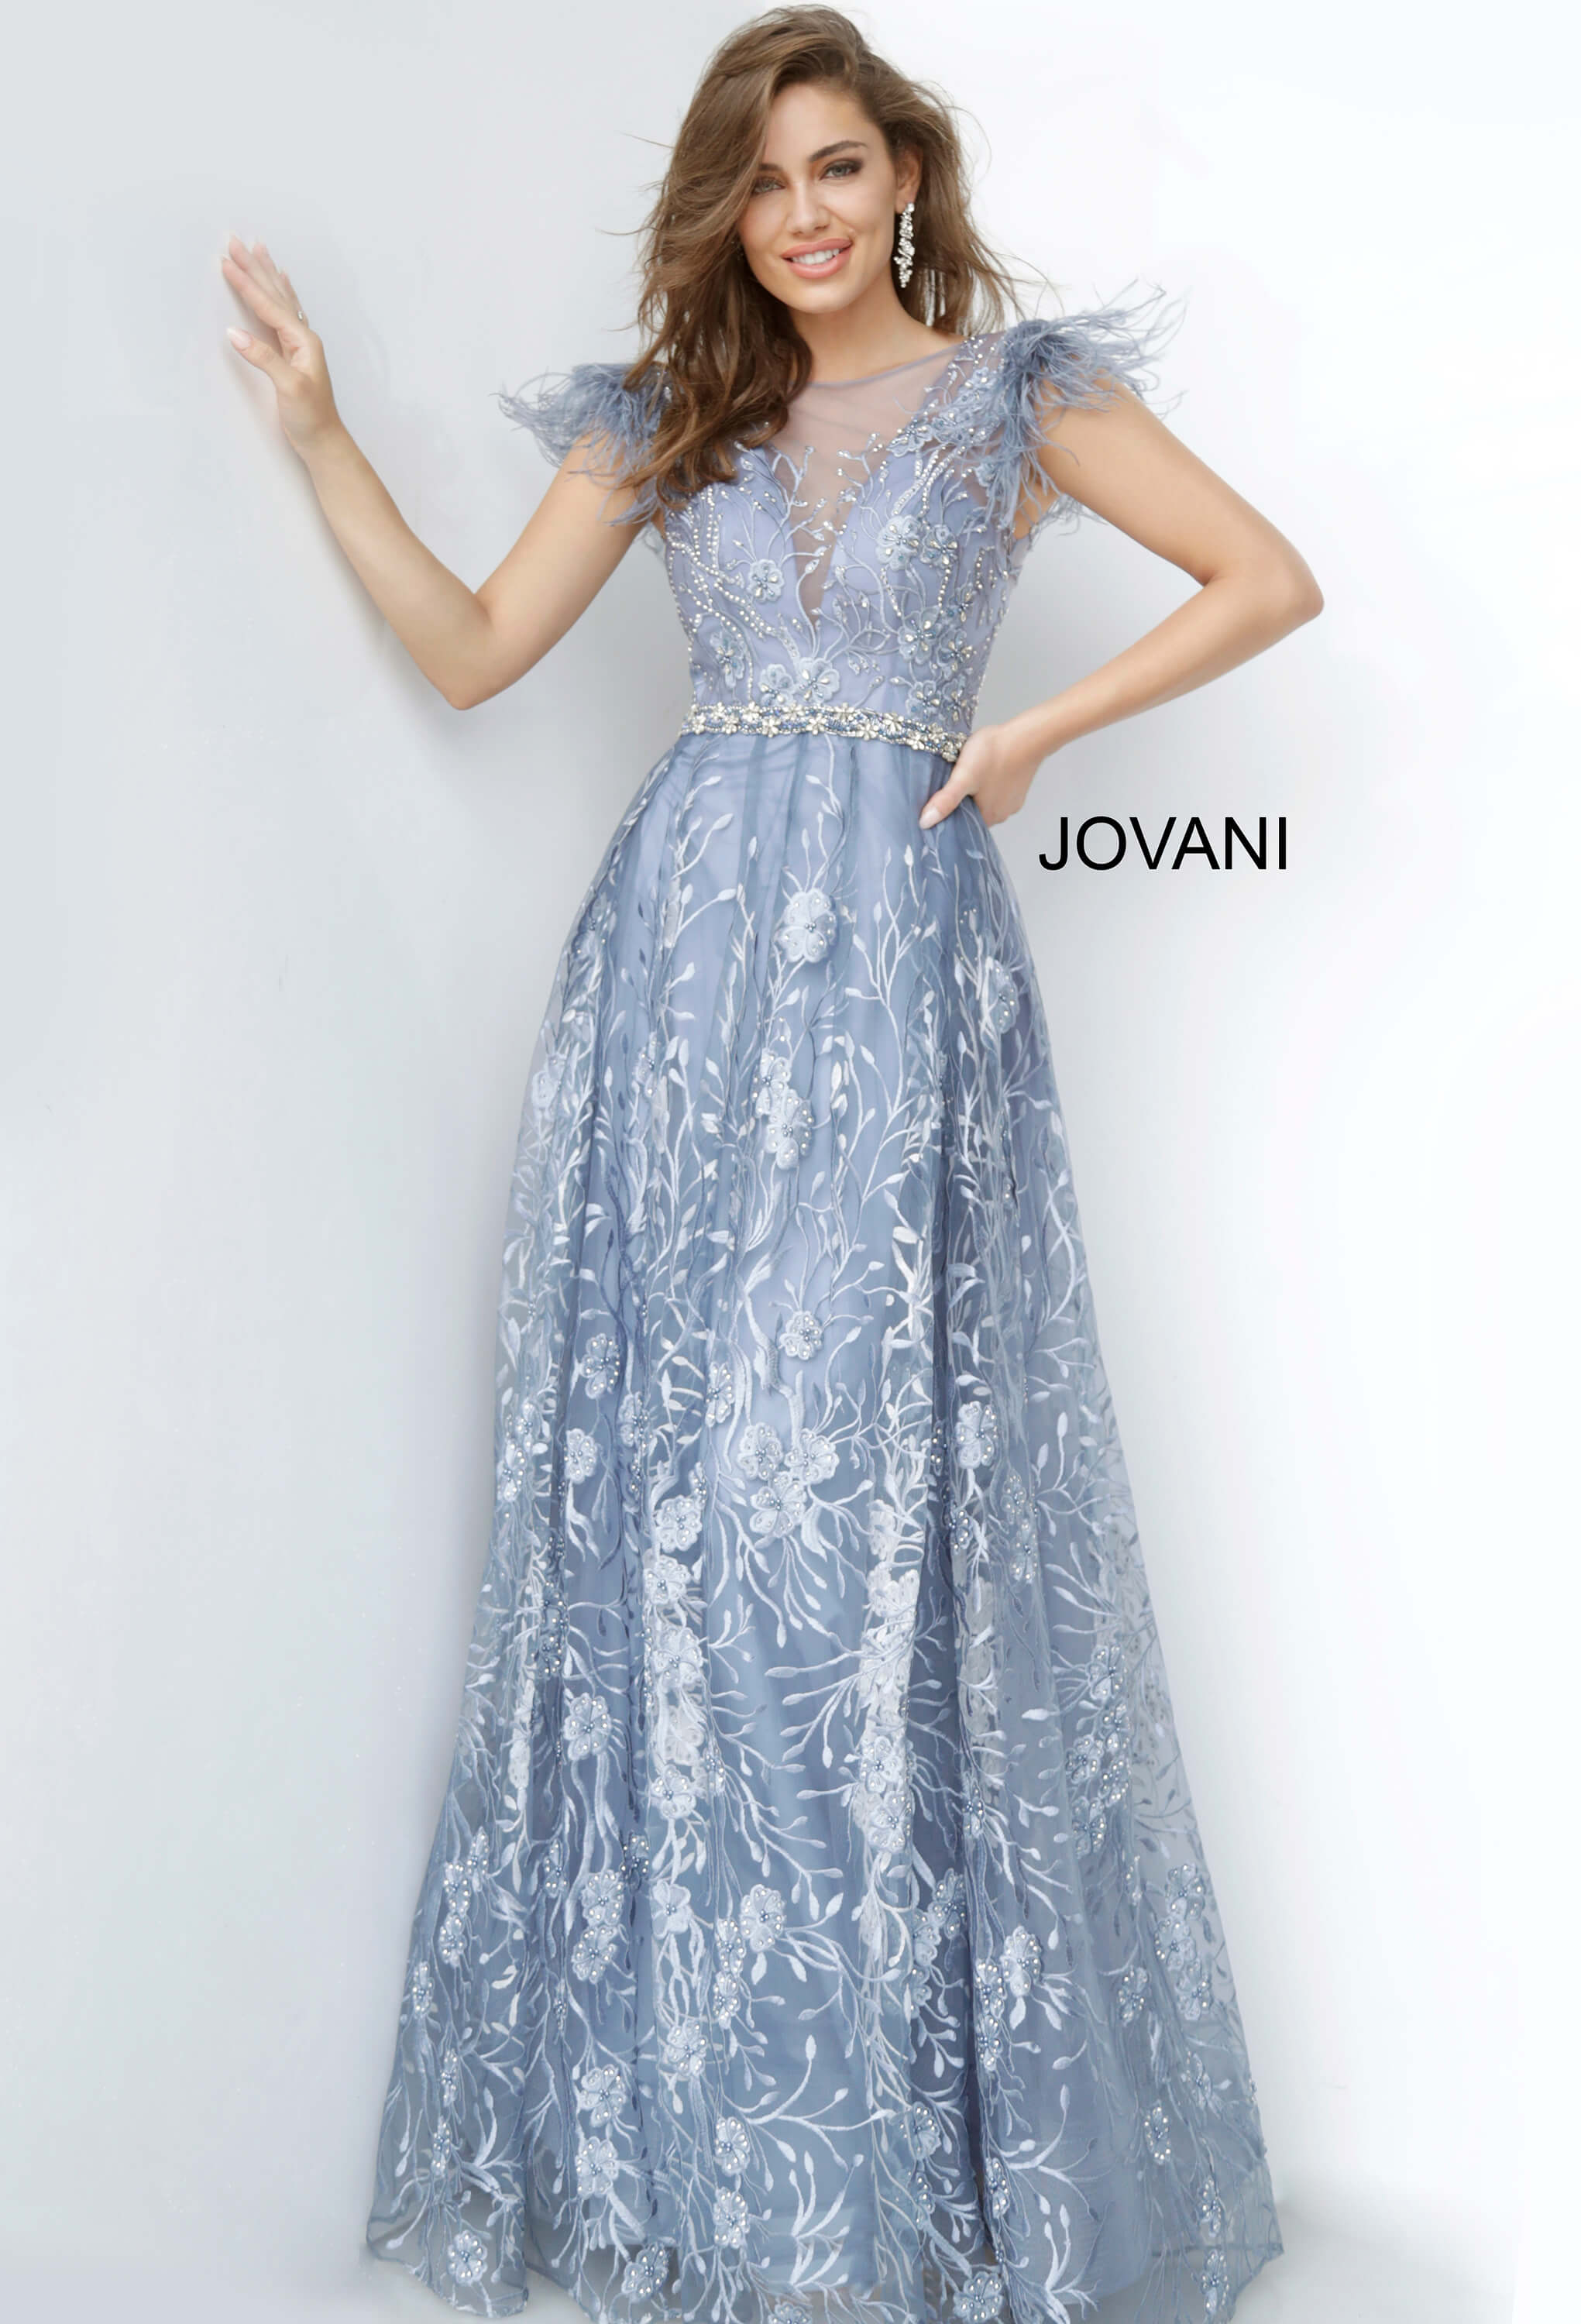 jovani Jovani 2350 Embroidered Maxi Evening Gown on mobile 3